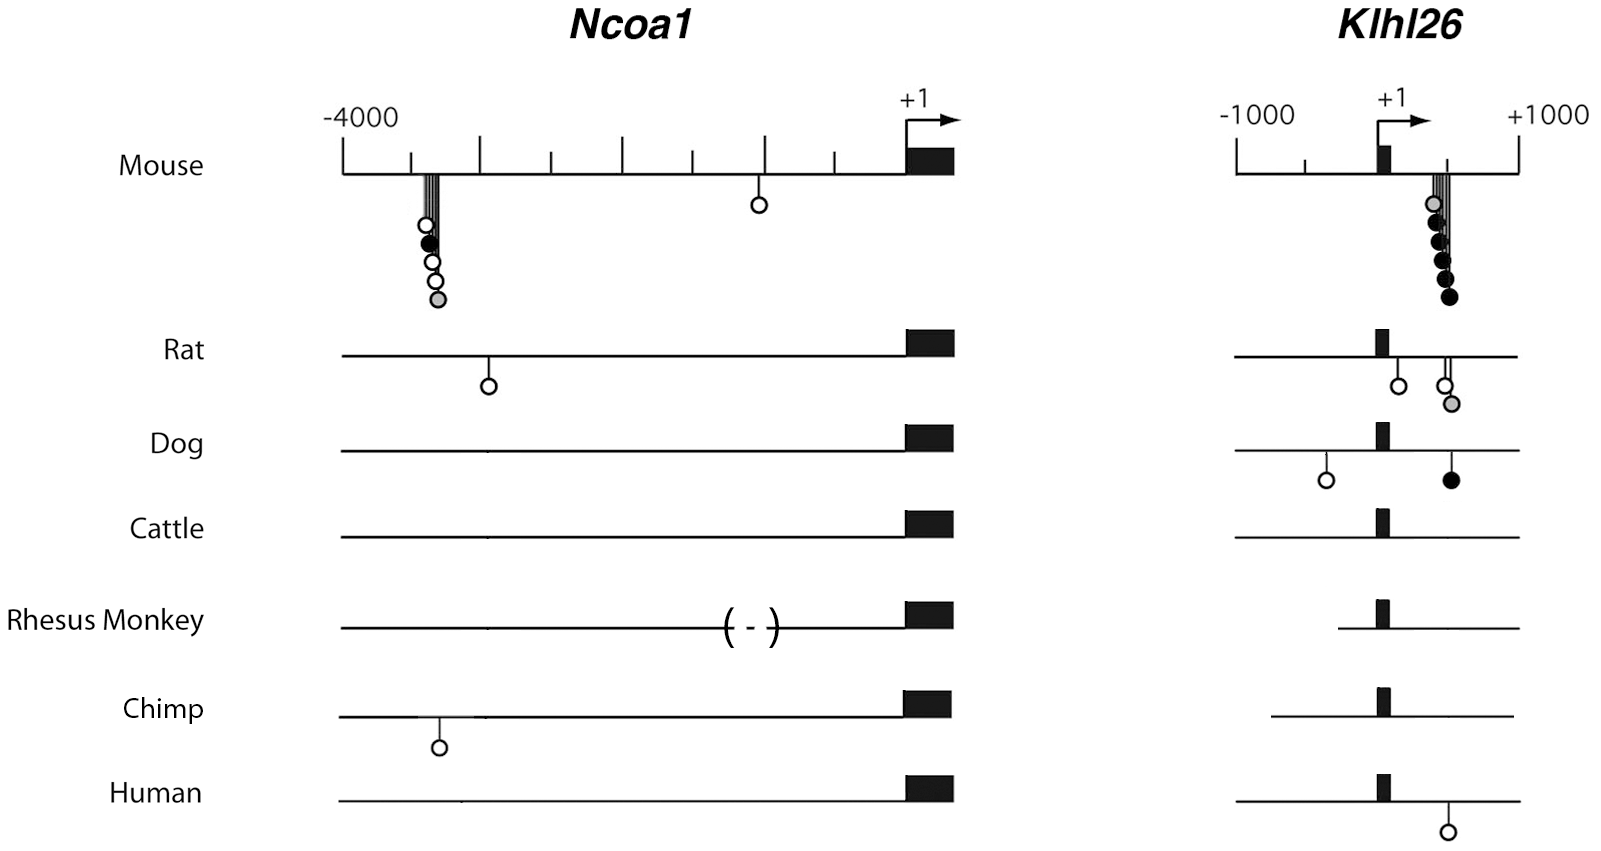 Comparative Consite analyses of <i>Ncoa1 and Klhl26</i> sequences from 7 mammalian species.